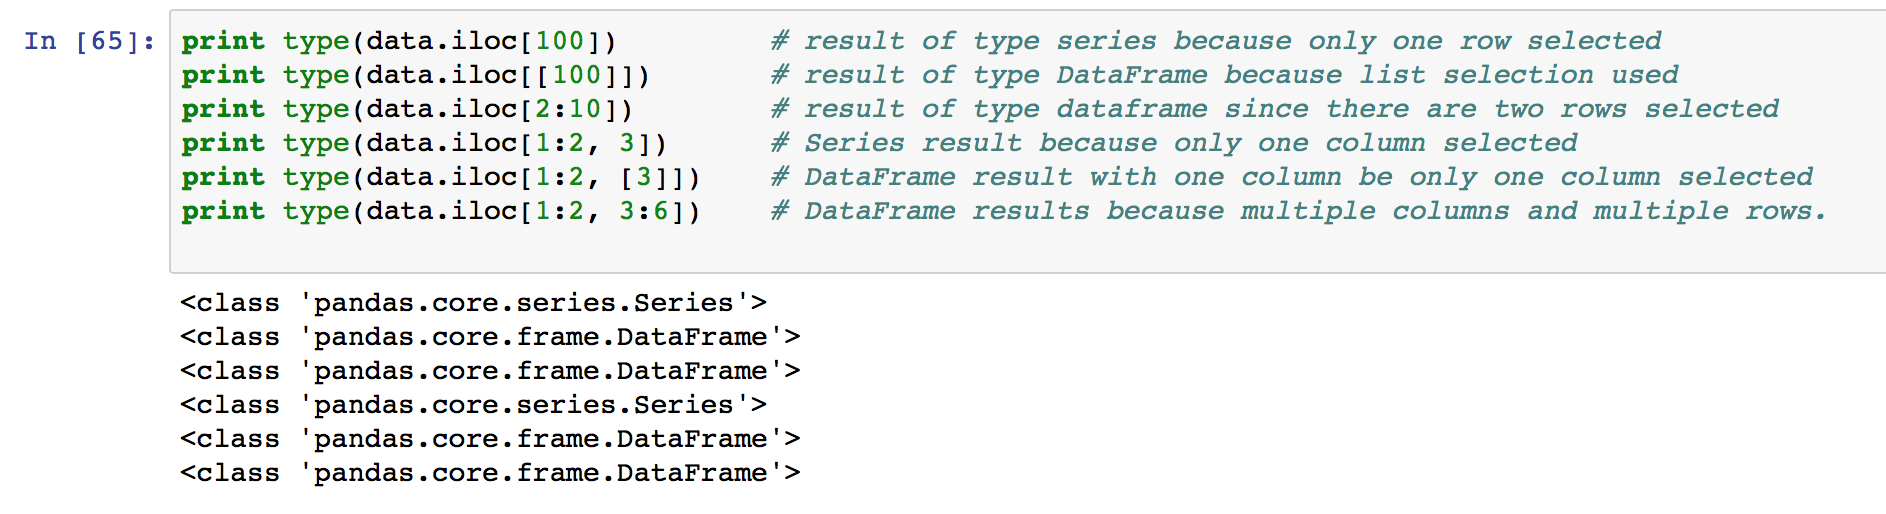 When using .loc, or .iloc, you can control the output format by passing lists or single values to the selectors.